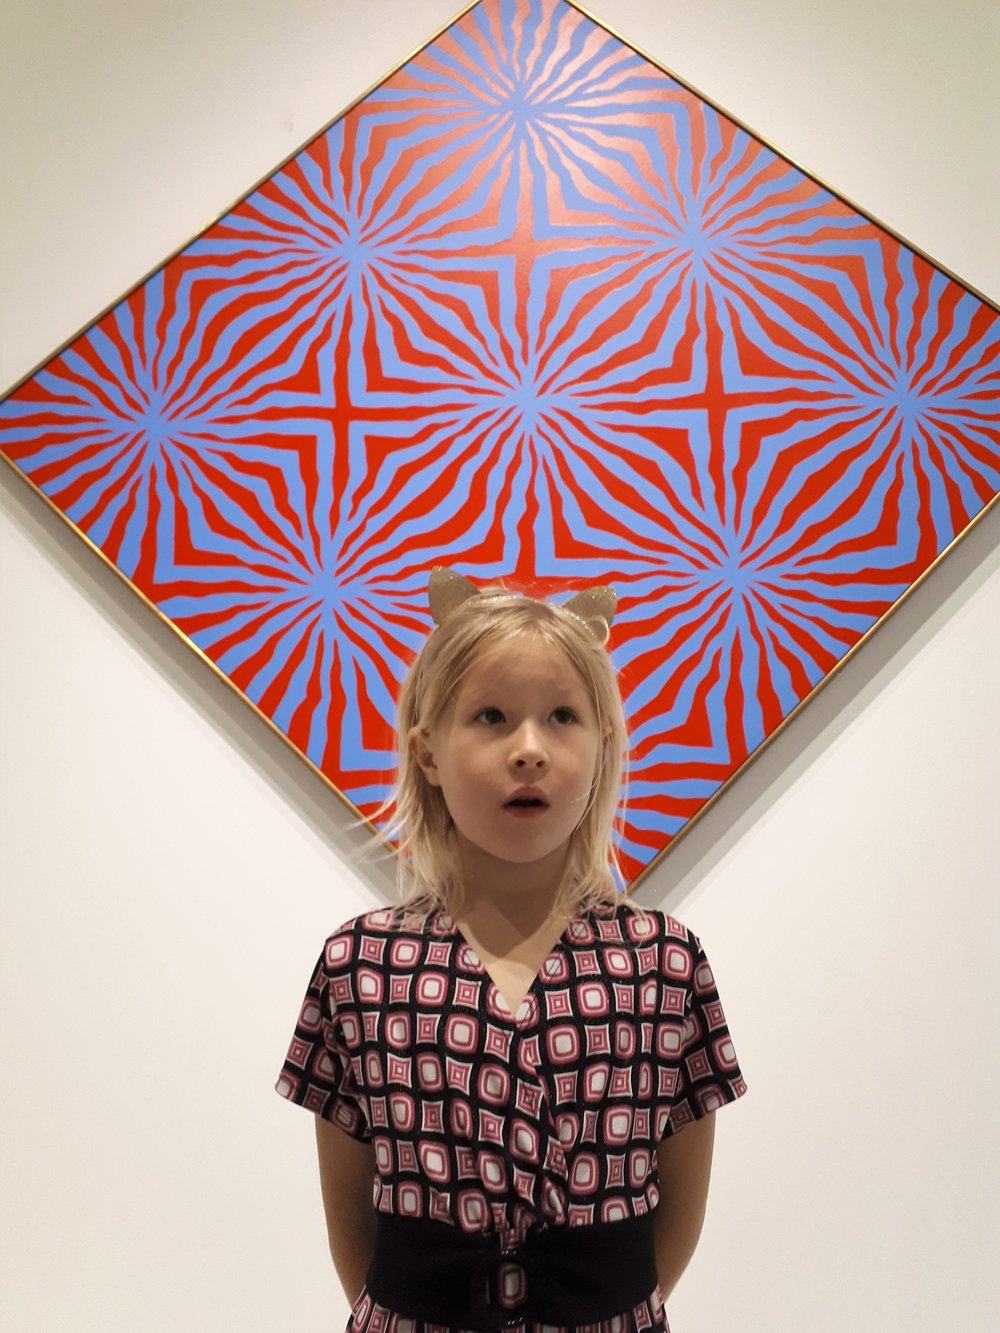 """Children naturally gravitate to art and art making. Najma Holmes, 6, puts it simply: """"I get happy when I make art."""" Here, she is modelling at the Museum of Fine Arts (Musee des Beaux Arts) in Montreal, a visit she called an awesome experience."""" Photo: Venta Rutkauskas"""